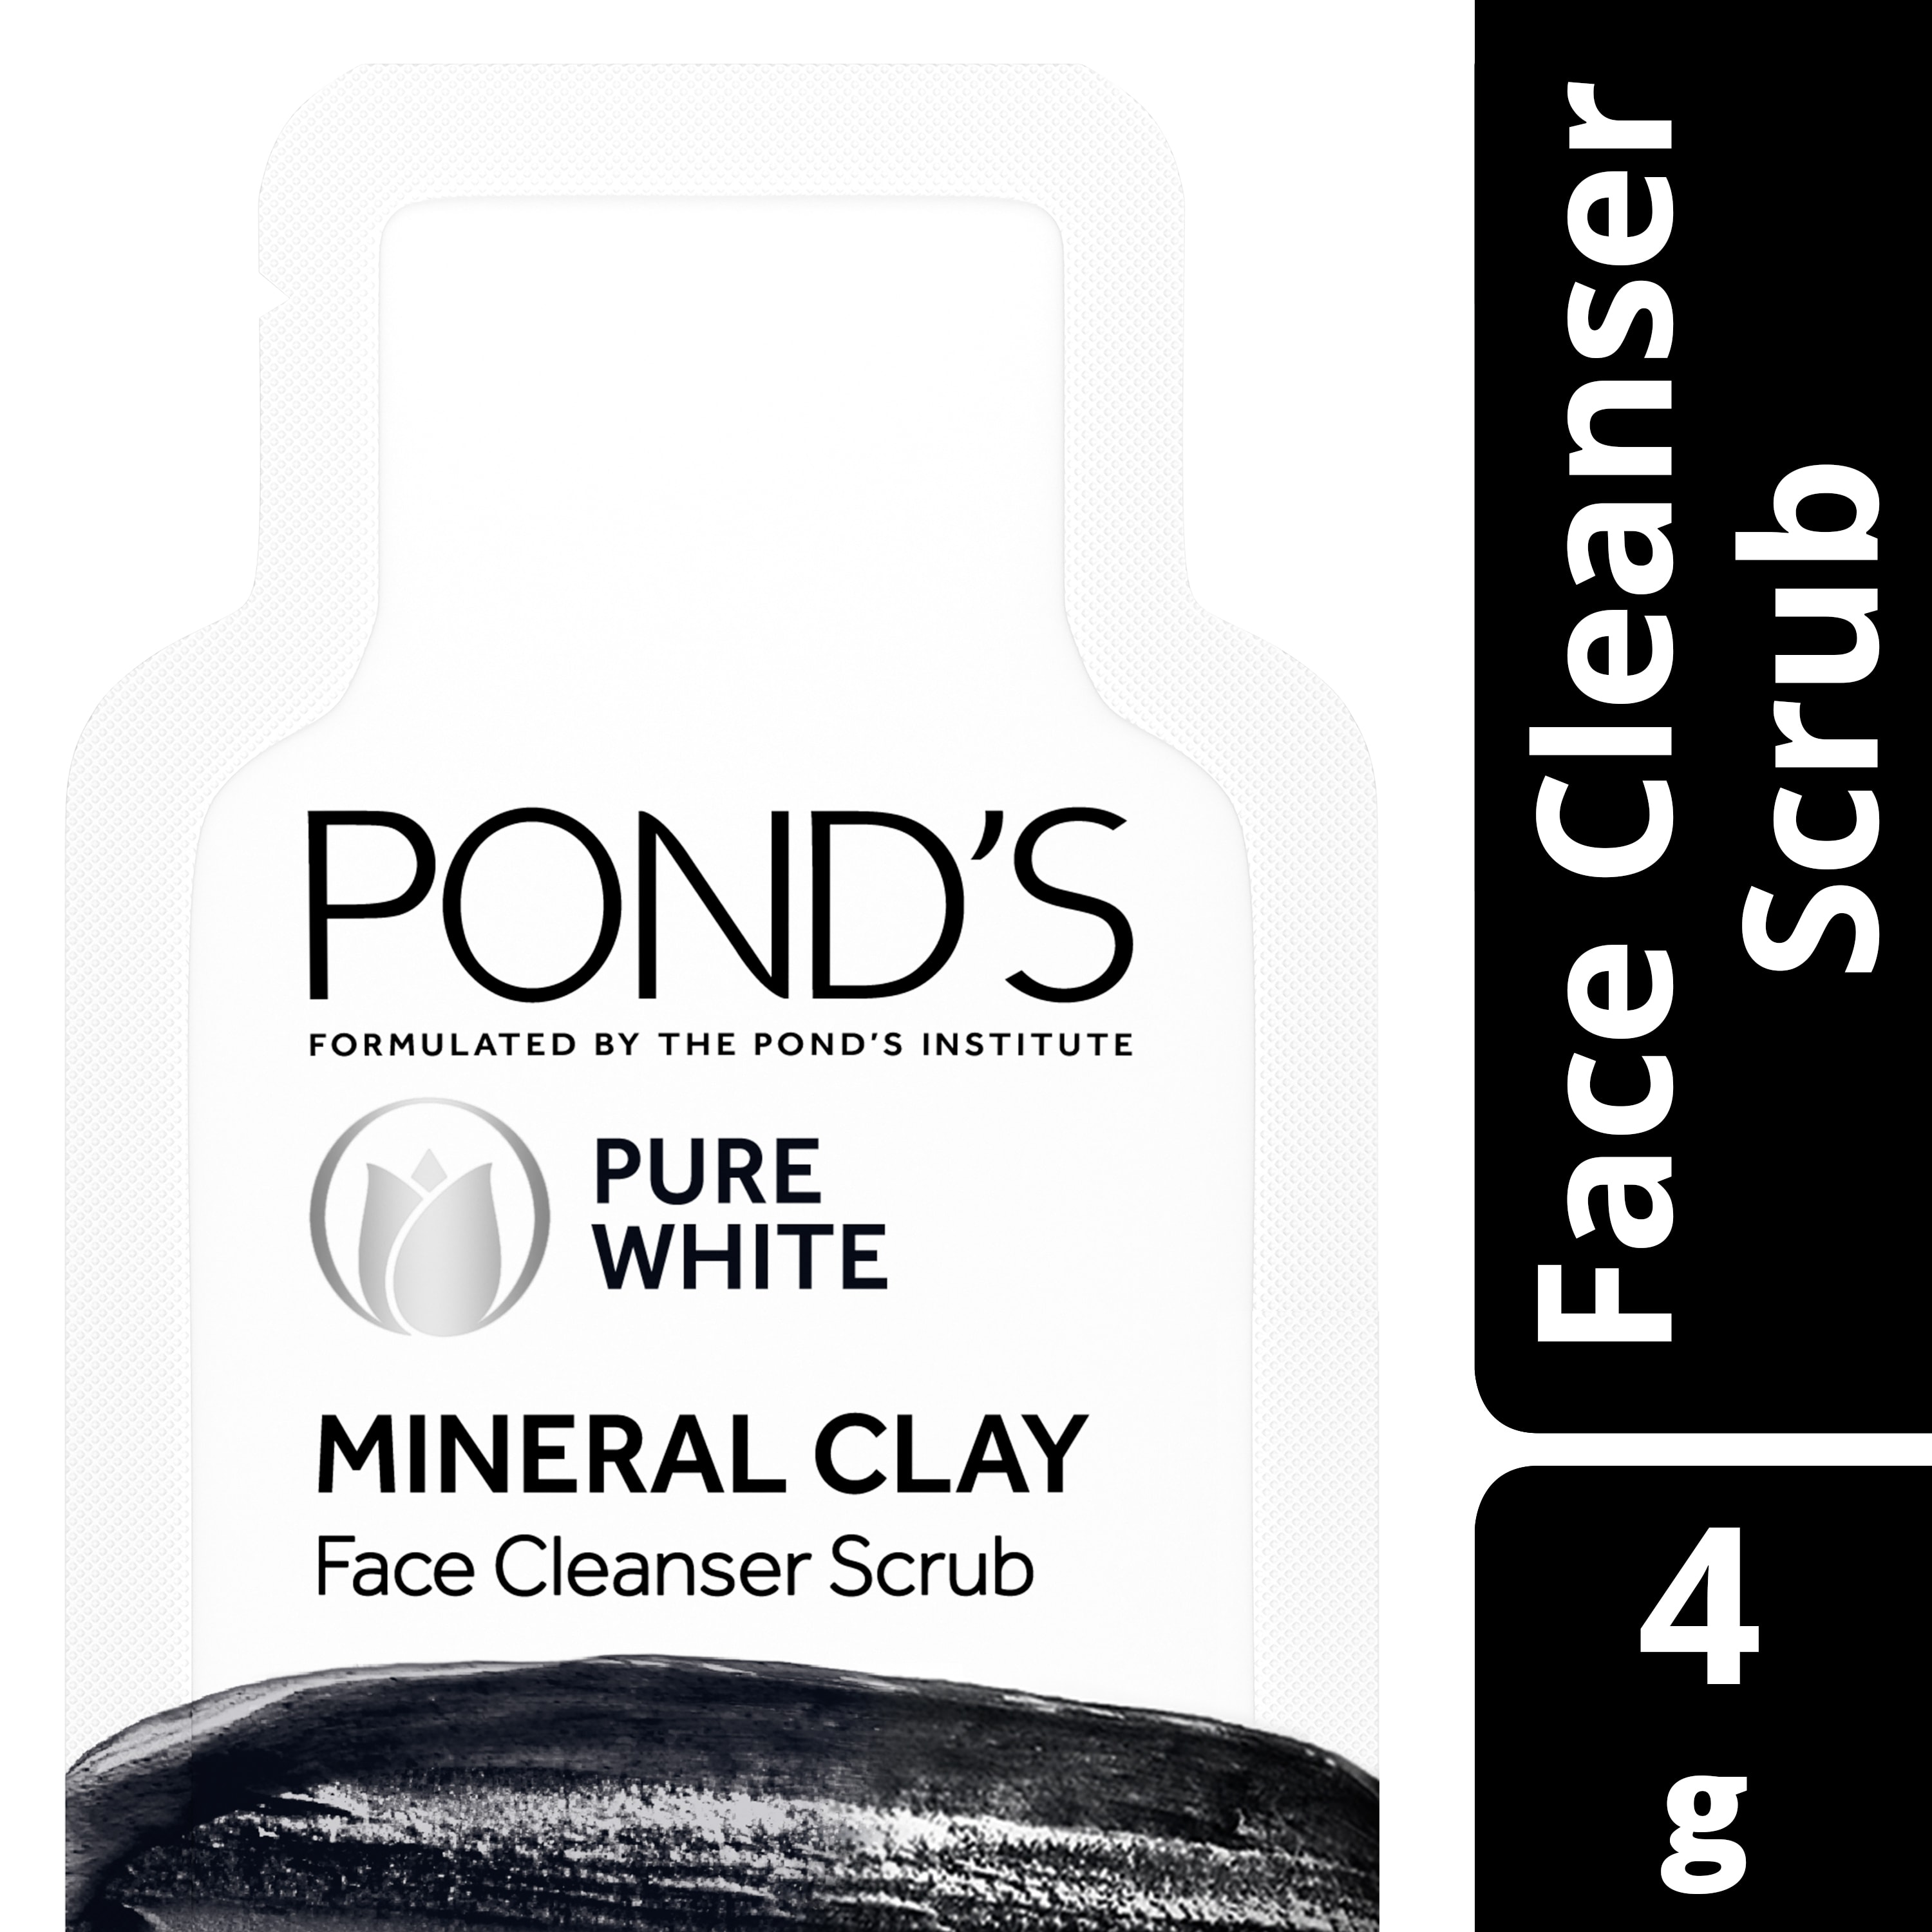 Ponds Pure White Mineral Clay Facial Cleanser Scrub 4g